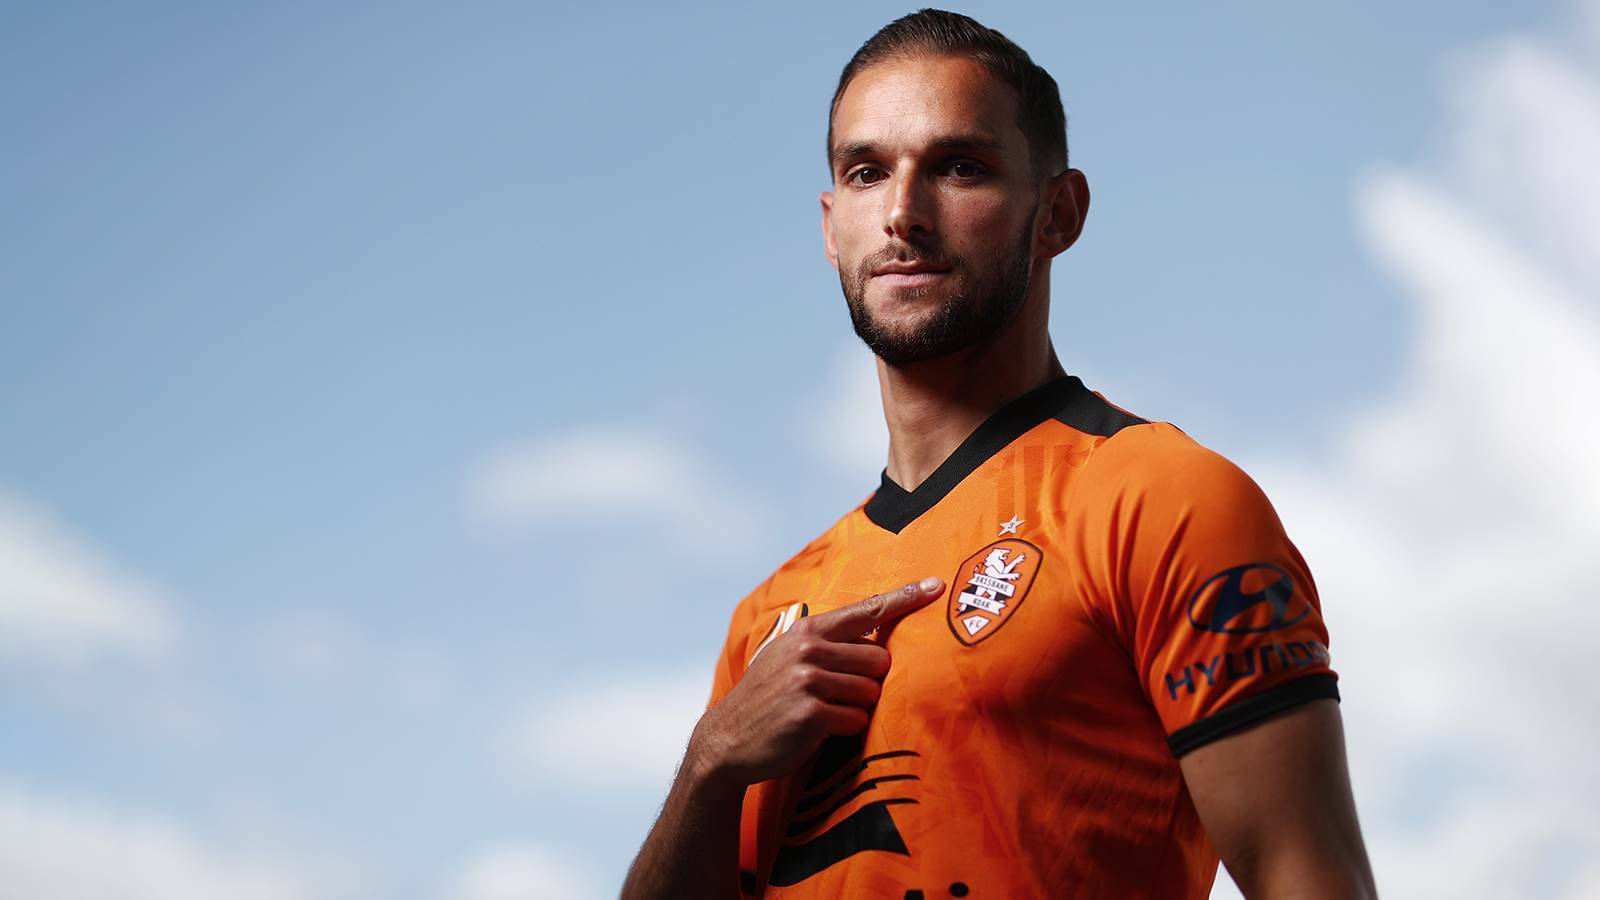 Hingert moves on after A-League nightmare